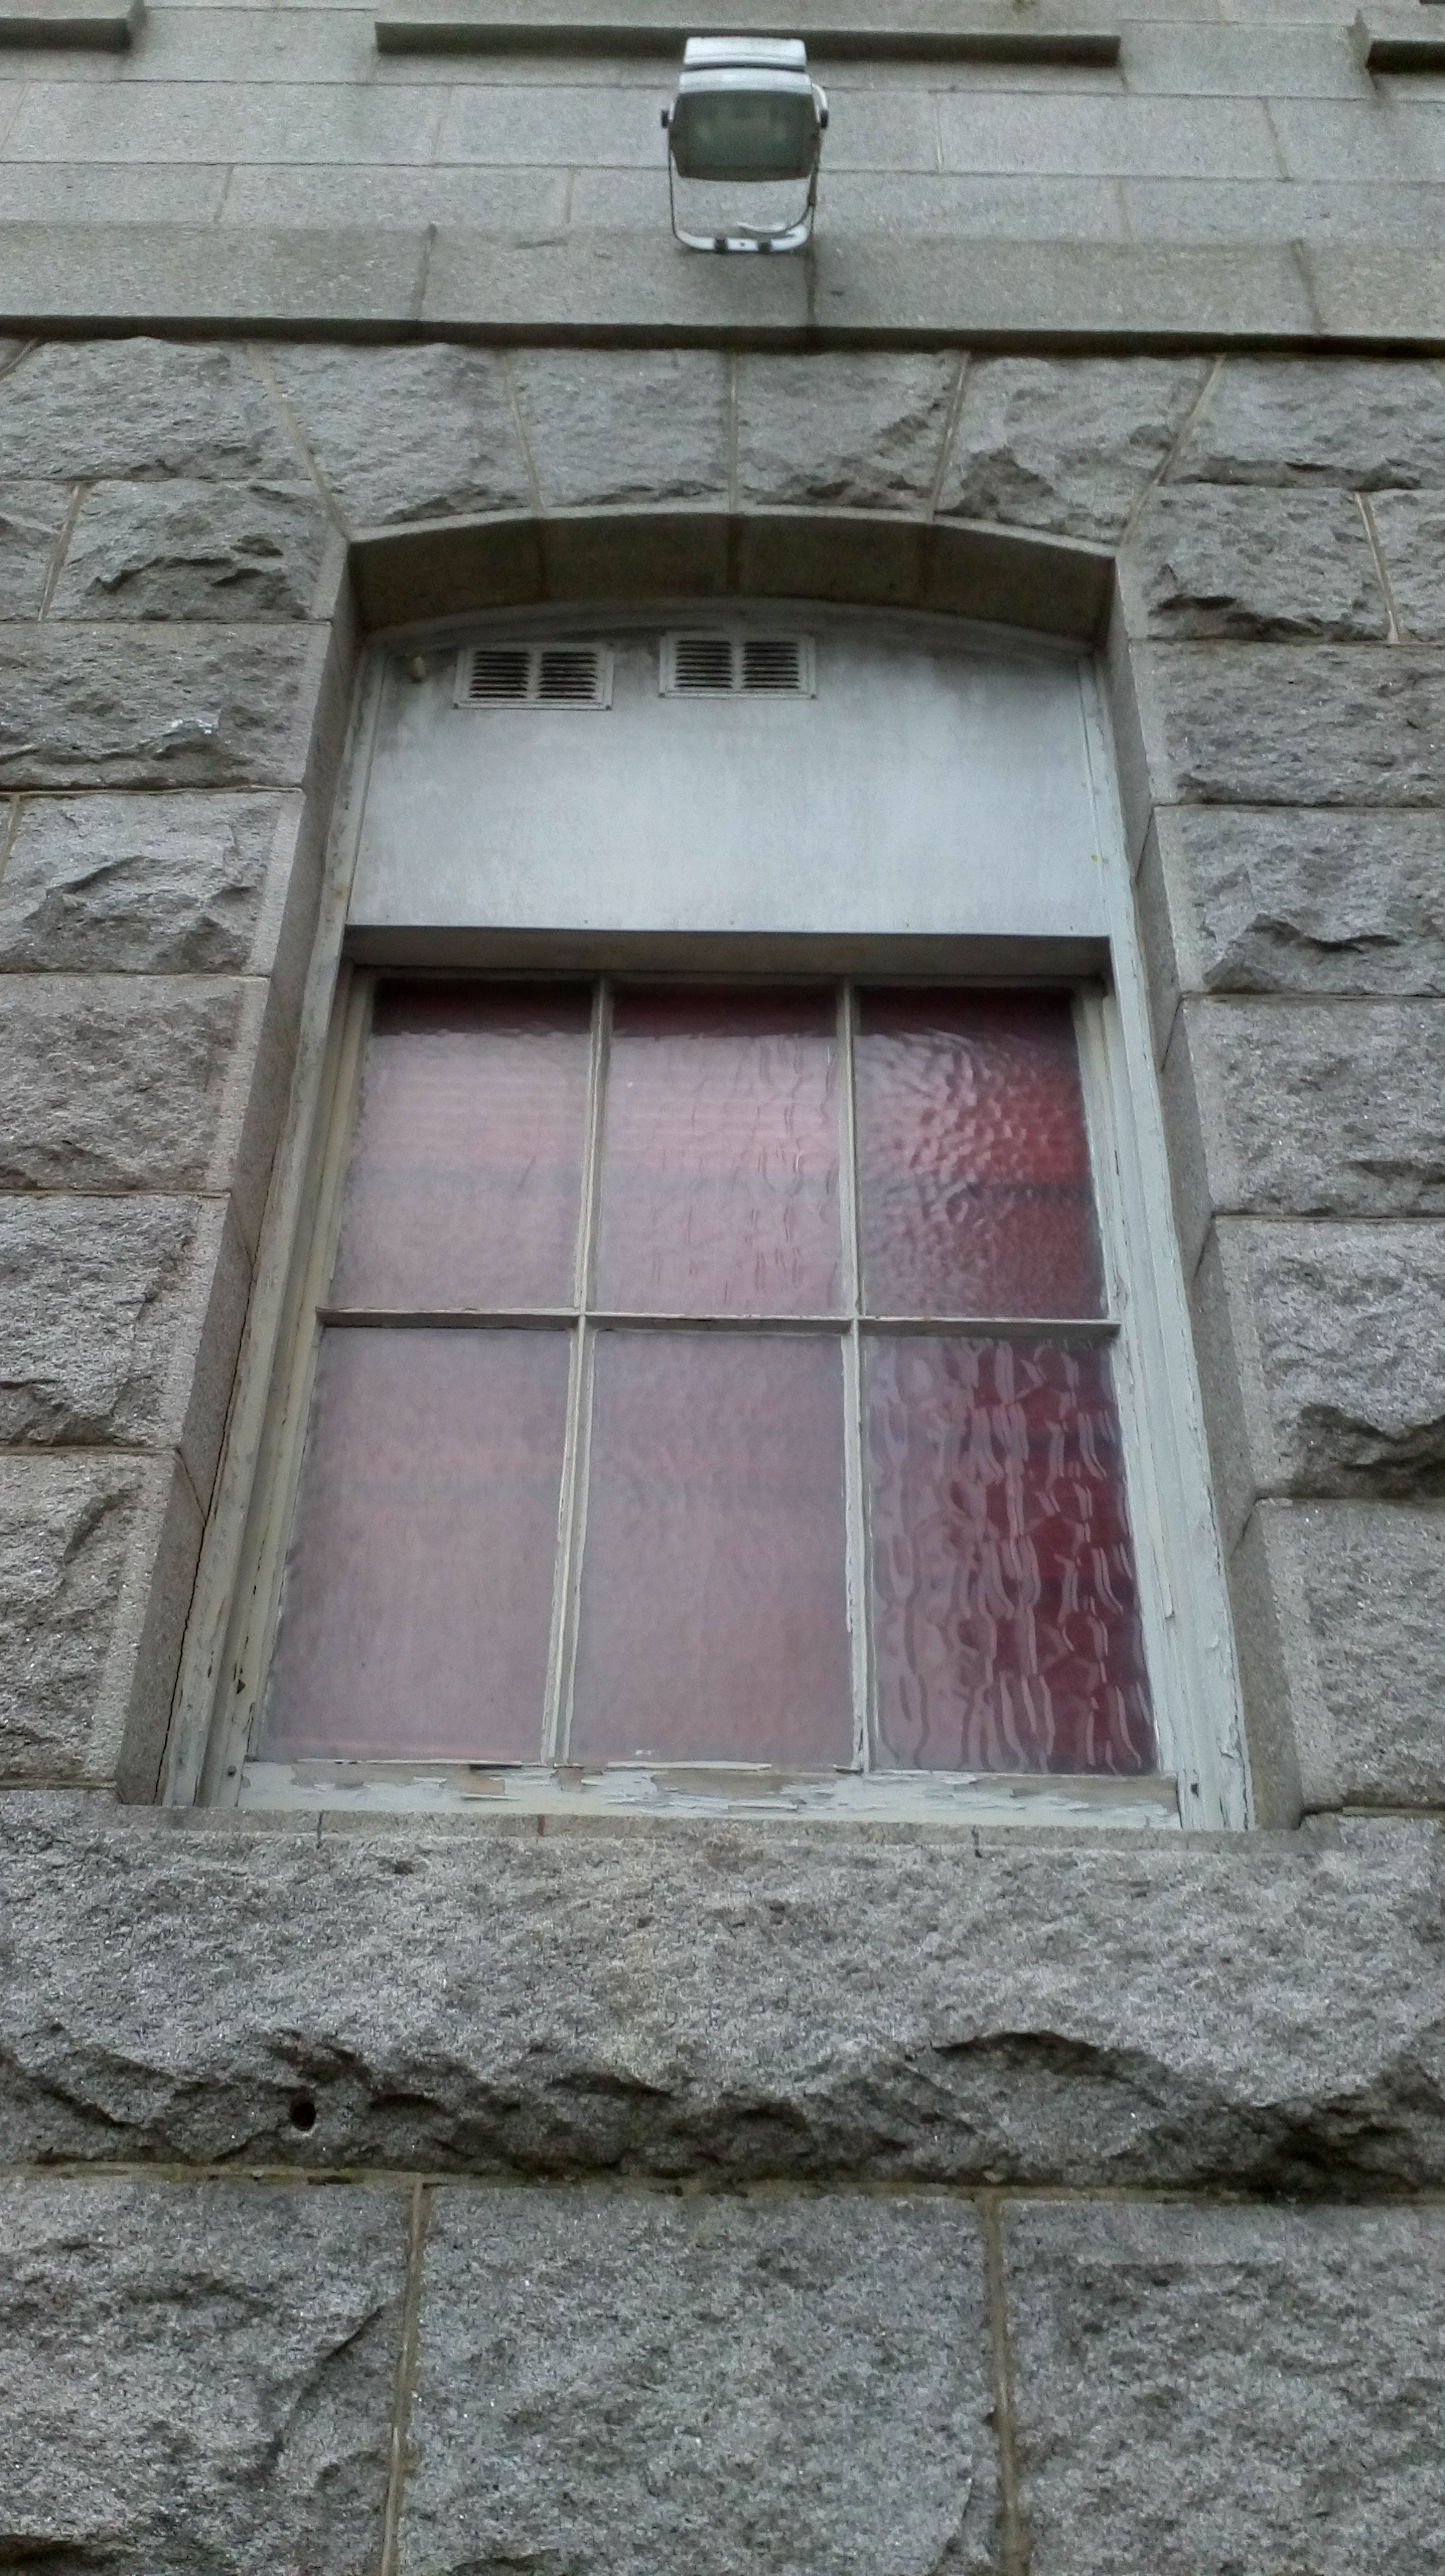 exterior_upper_middle_window.jpg